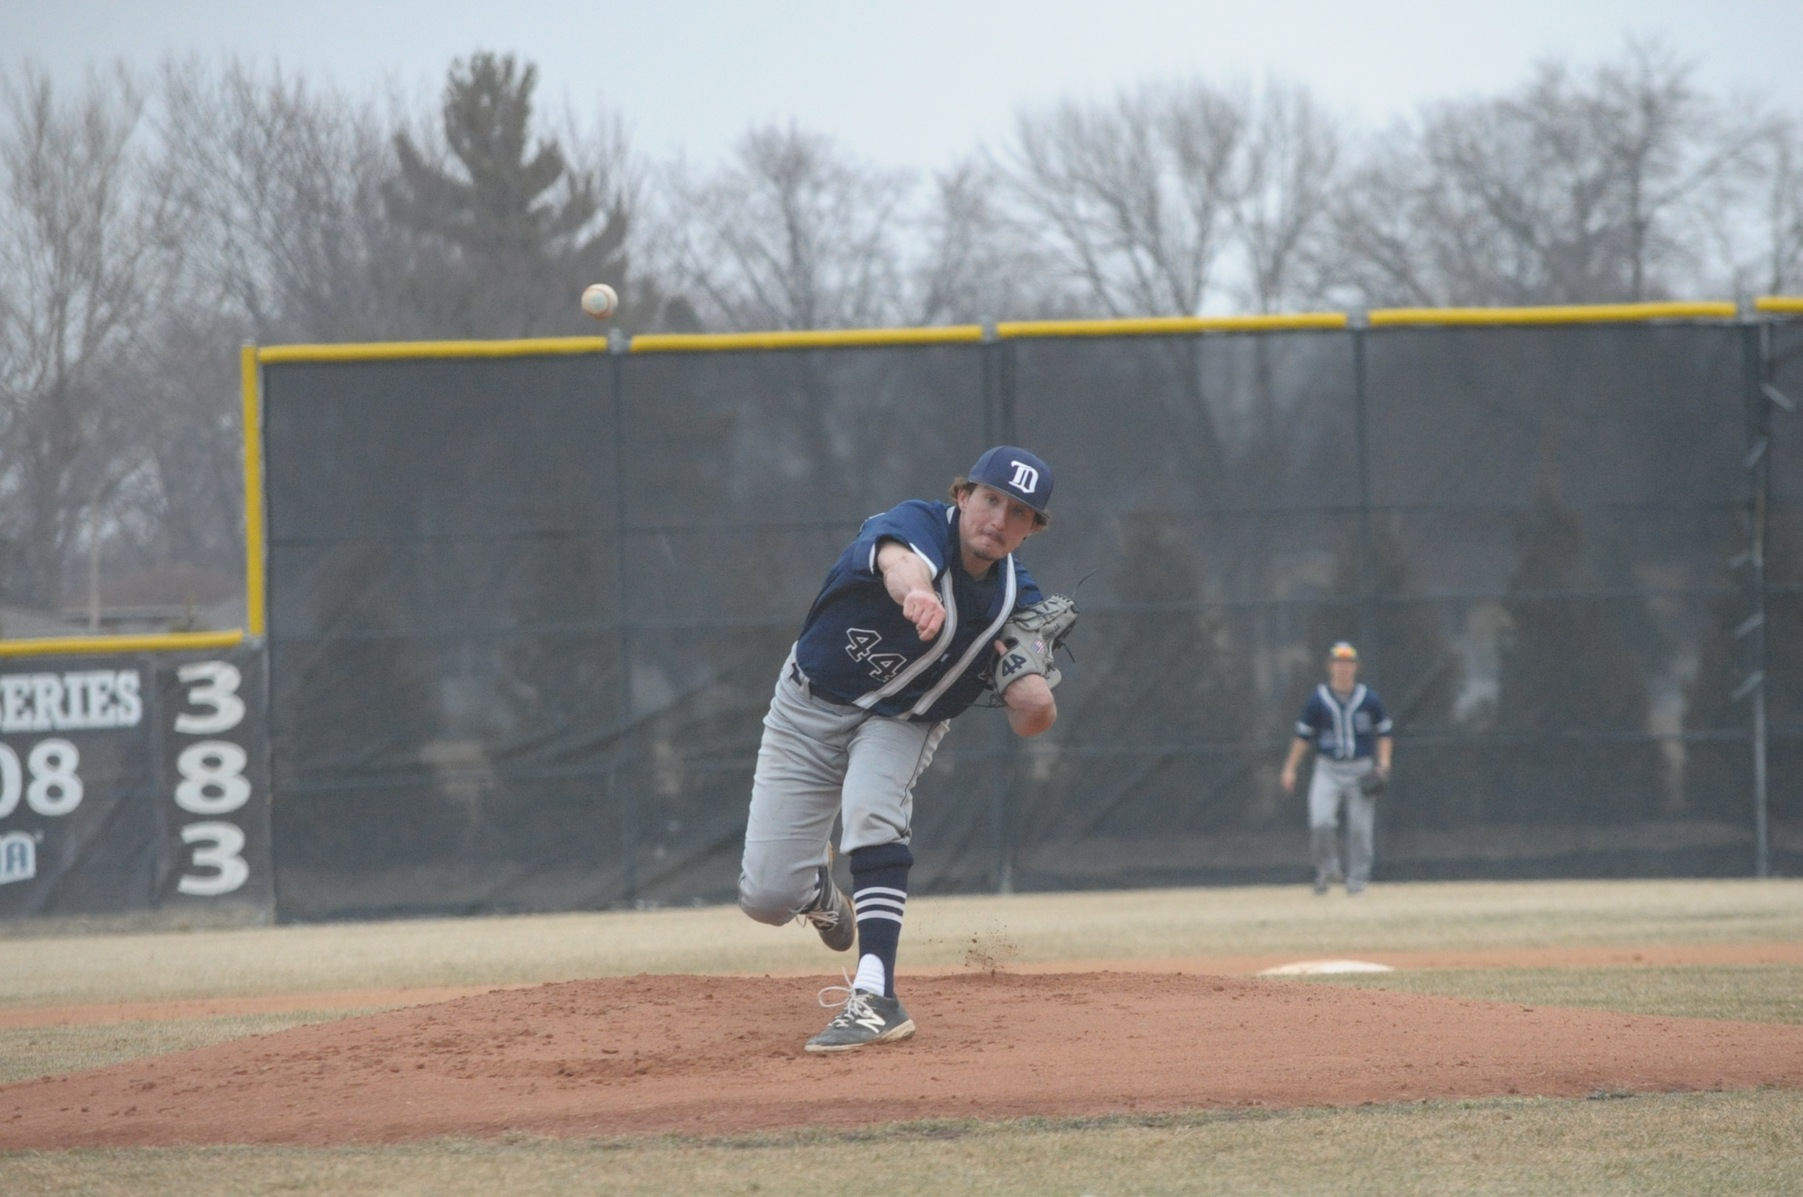 DMACC baseball team splits doubleheader with NIACC